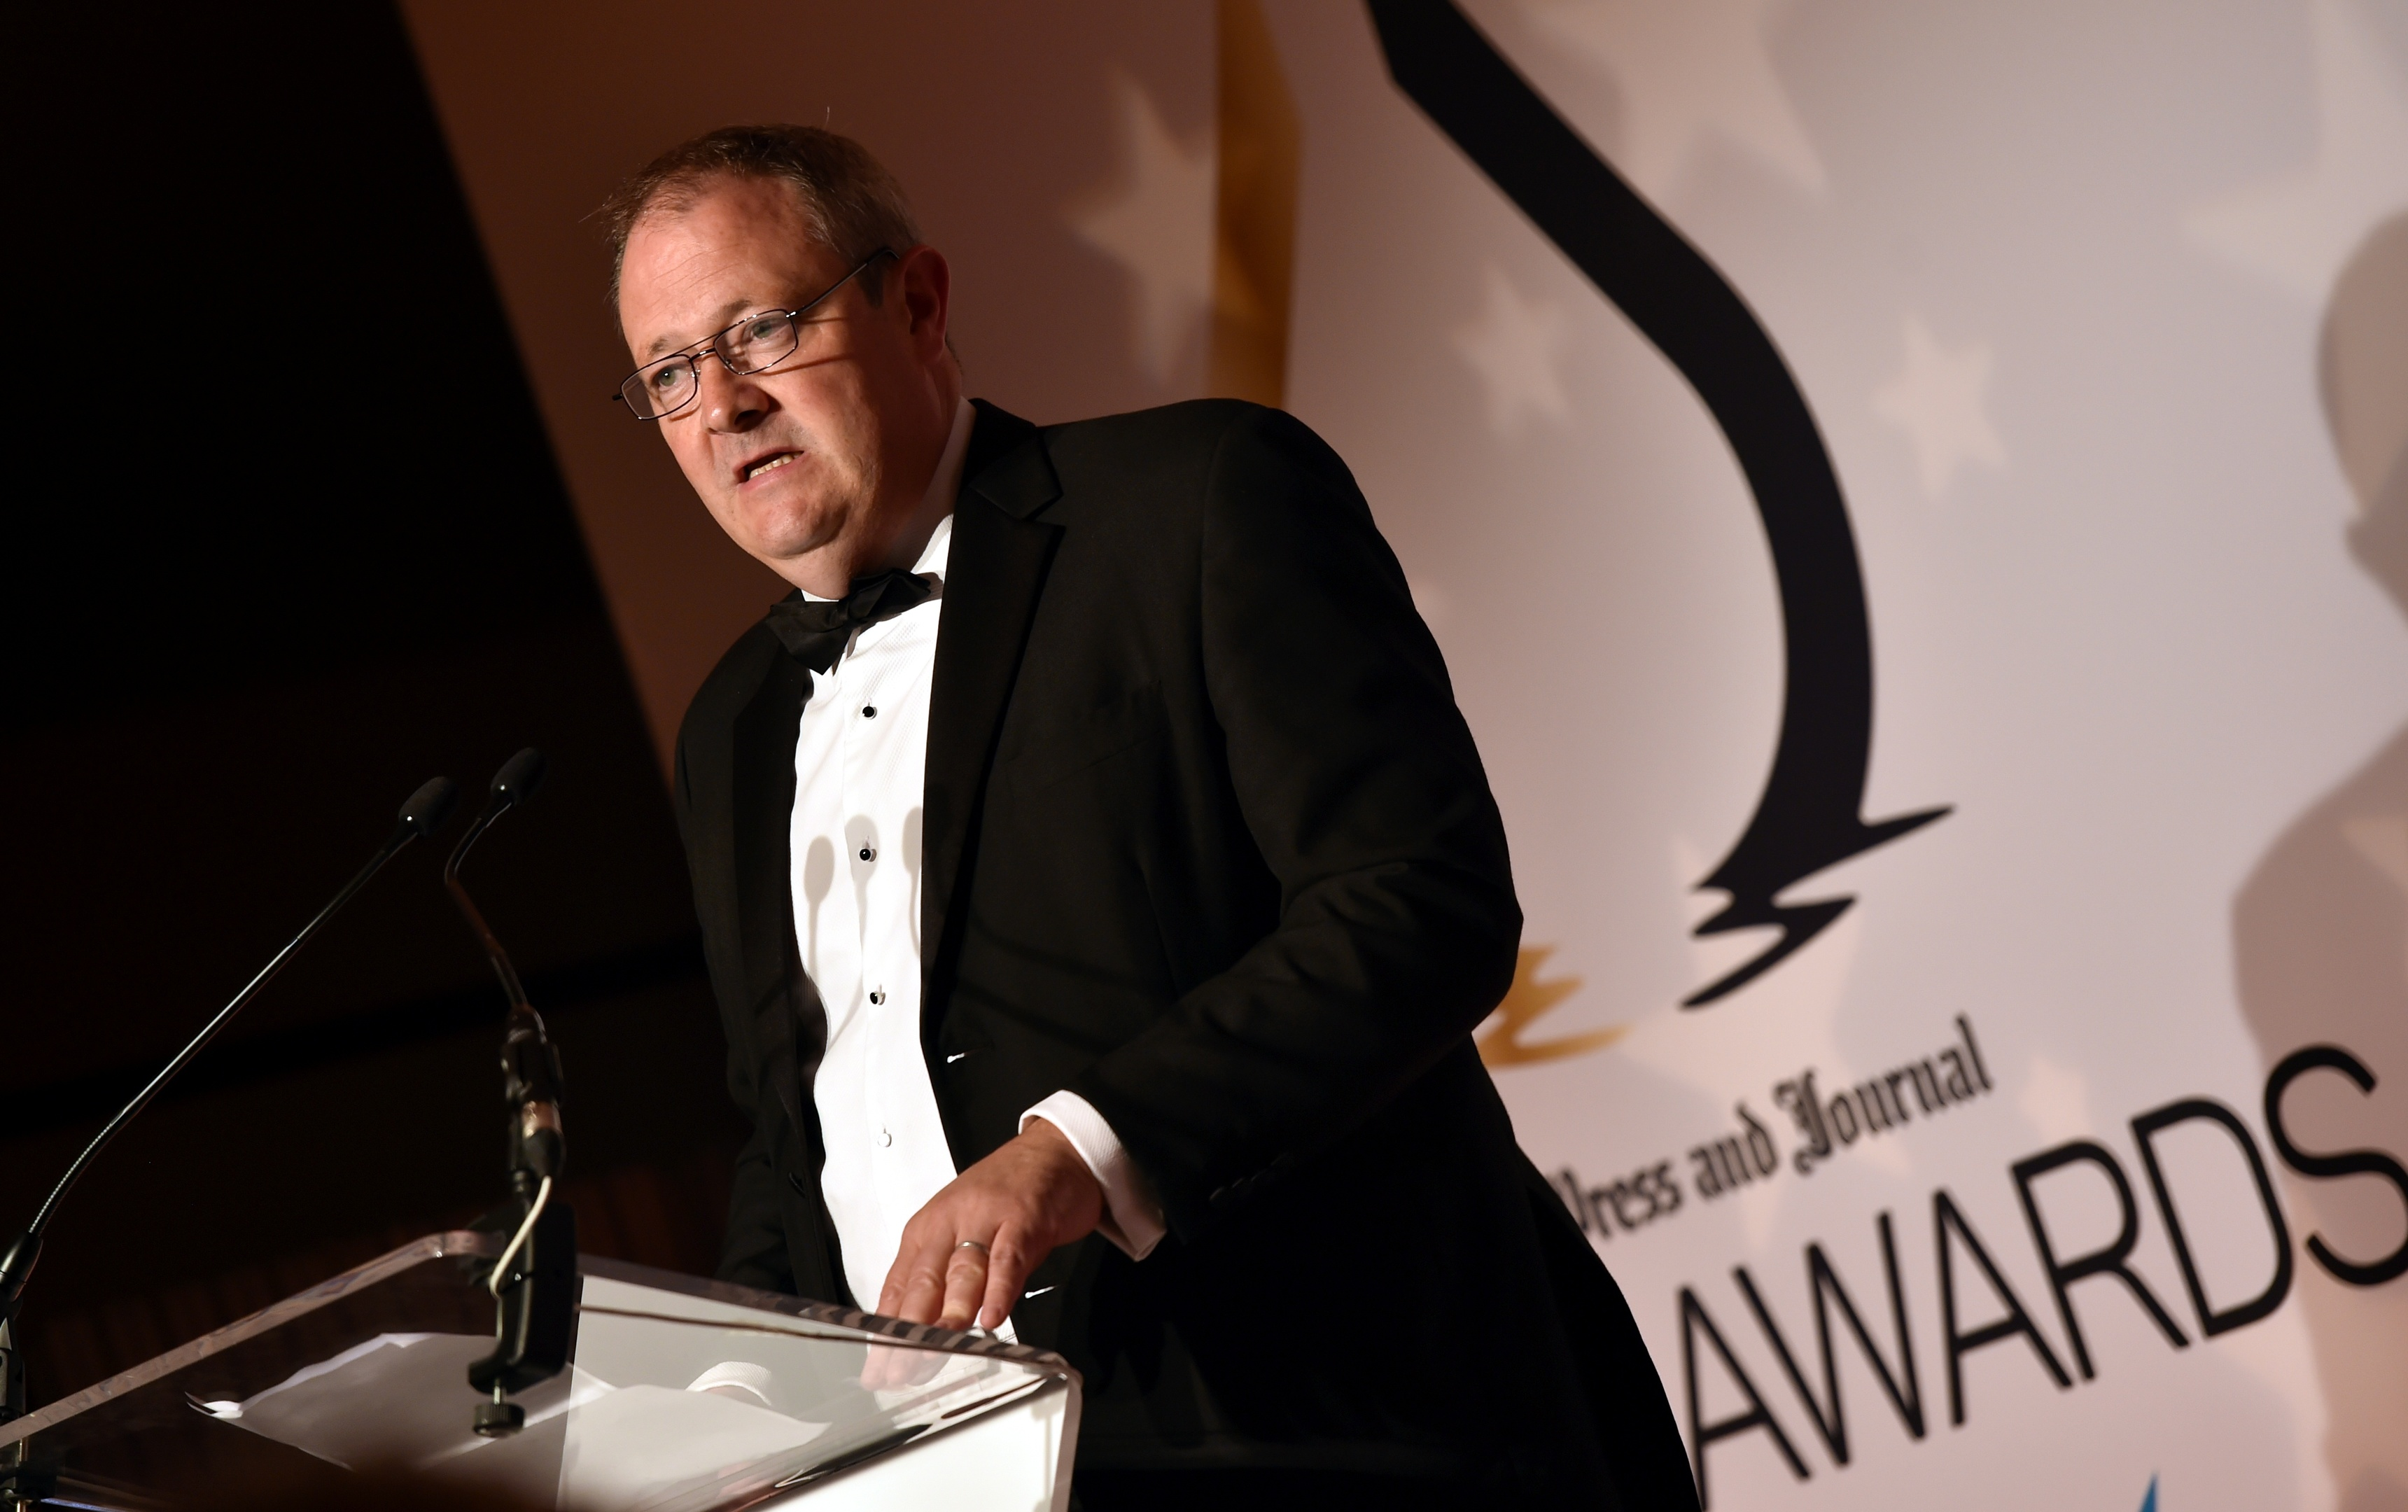 Gold awards held at the Marcliffe Hotel and Spa, Aberdeen. Press and Journal editor-in chief Richard Neville